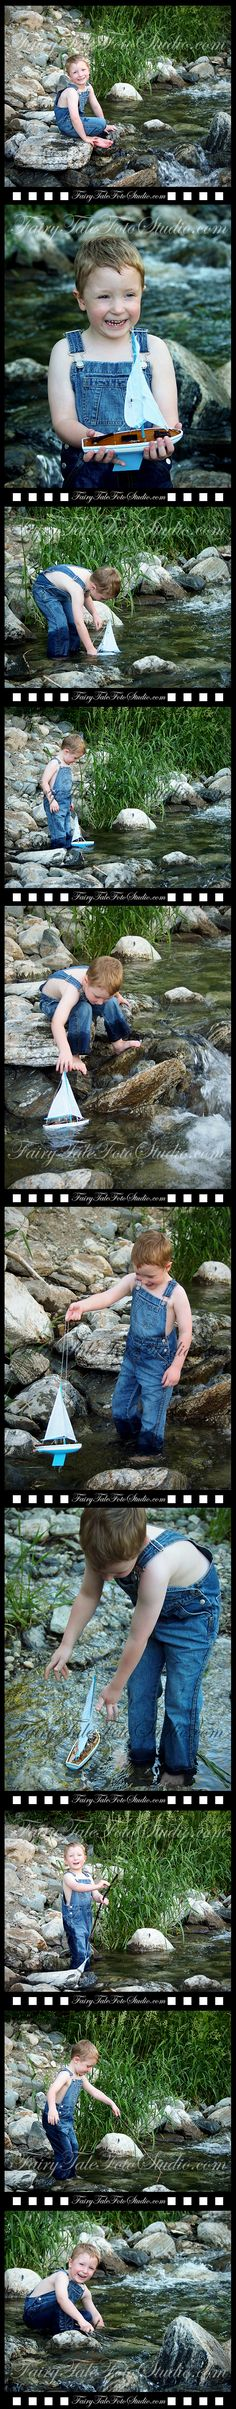 Boy Playing with His Toy Sailboat in a Stream Summer 4 Year Old Outdoor Photo Shoot | Portrait Pose | Photography | Cute Kid Pic | Children | Child | ~Bountiful Utah Photographer